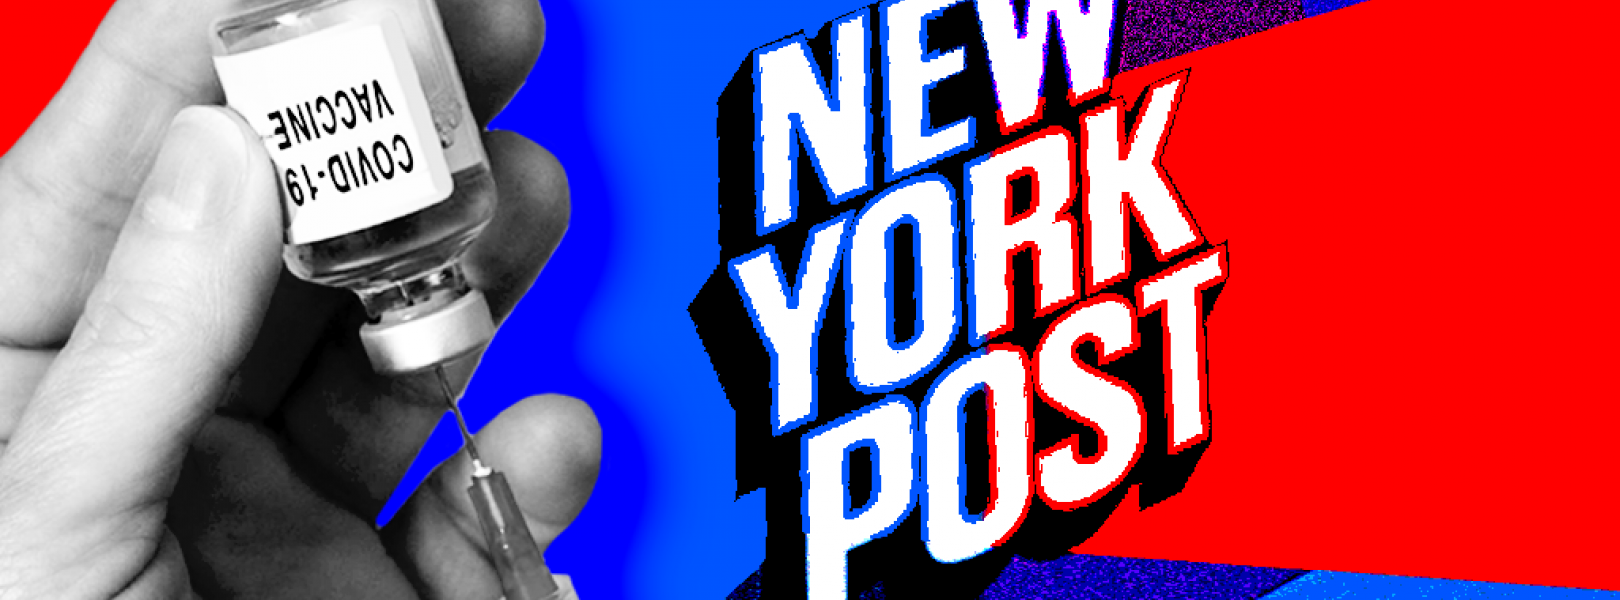 A New York Post logo with a vaccine